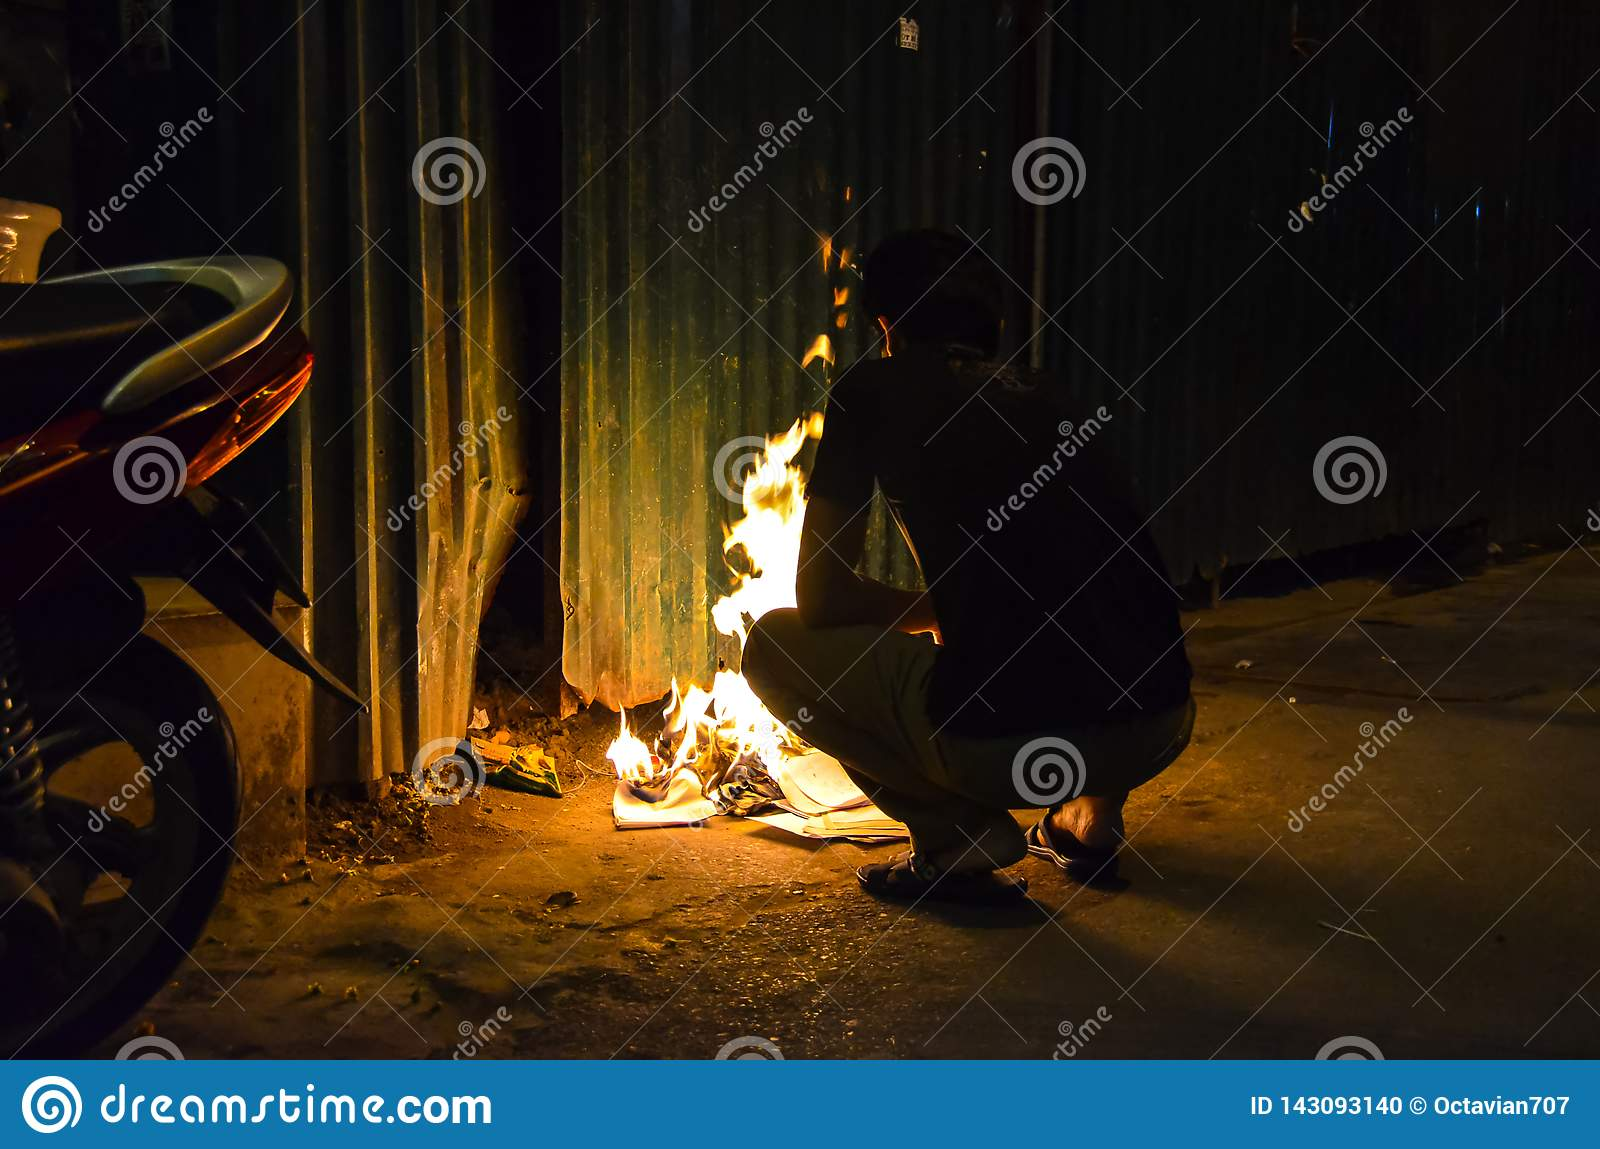 Vietnamese guy burning paper at night